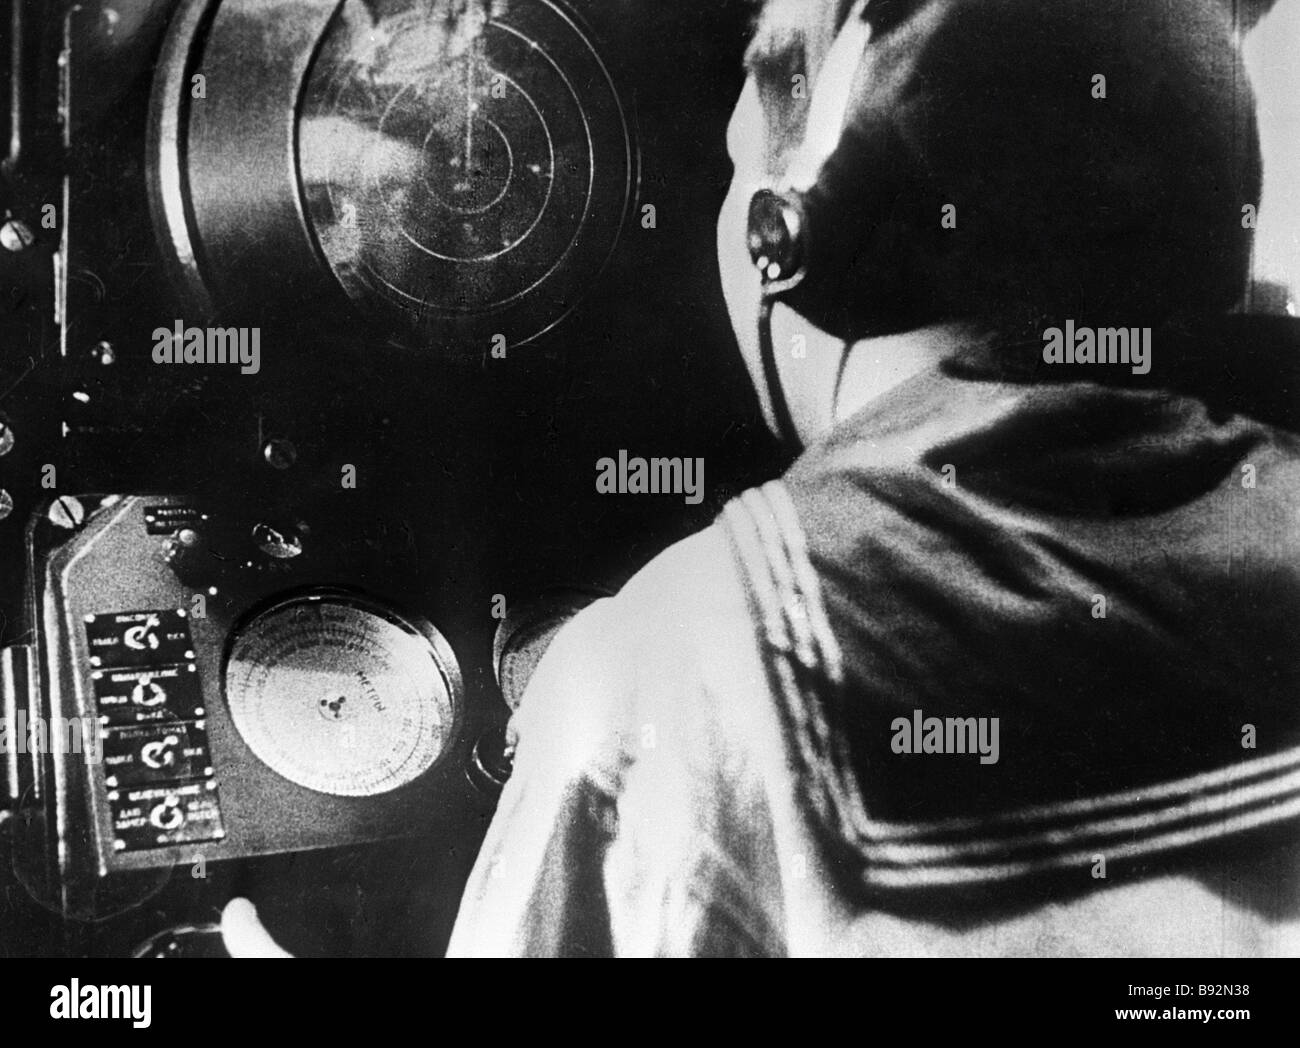 Sailor watches approaching objects on radar - Stock Image